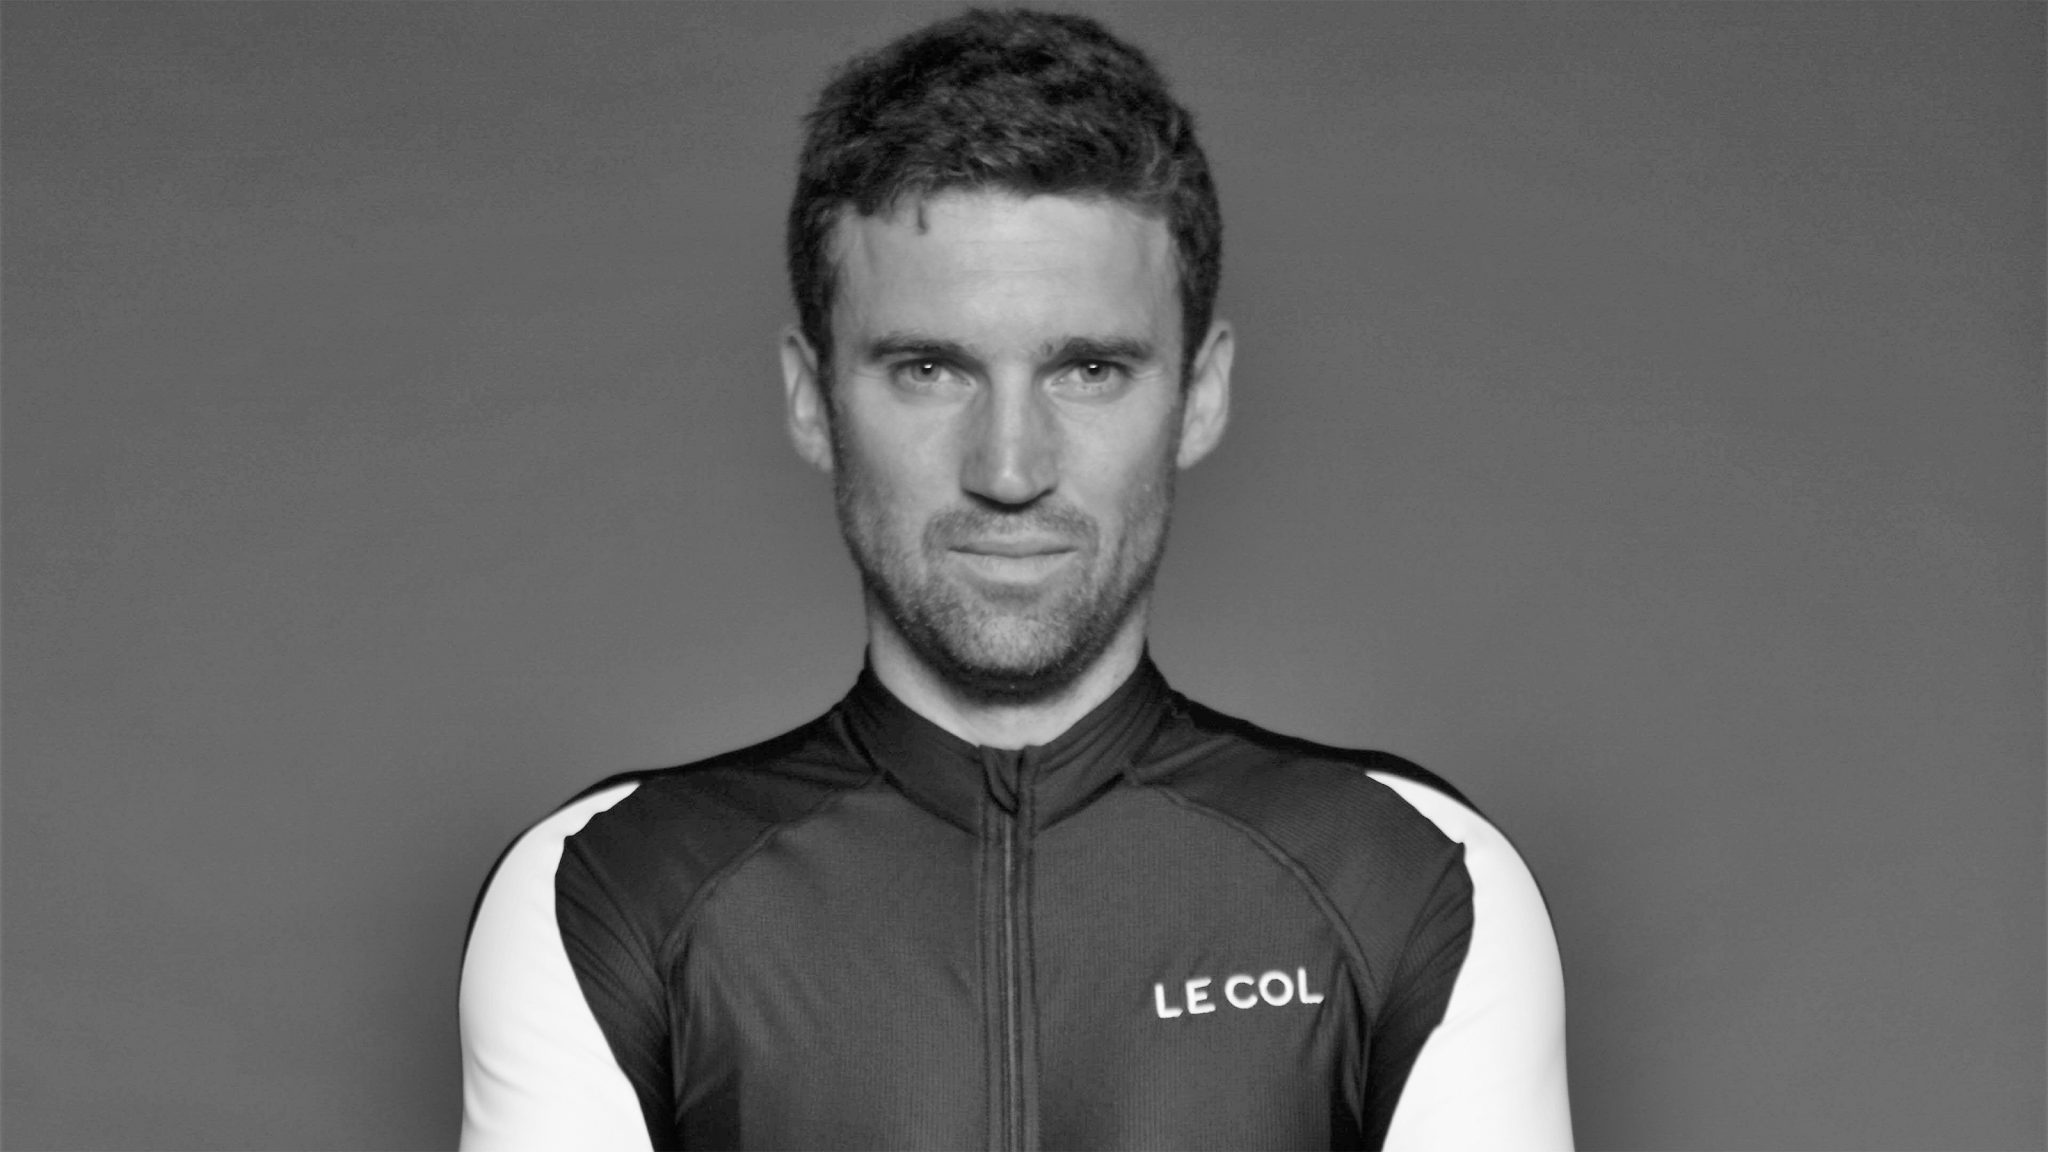 SweetSpot appoint Le Col as Official Cycle Clothing Partner to OVO Energy Women's Tour